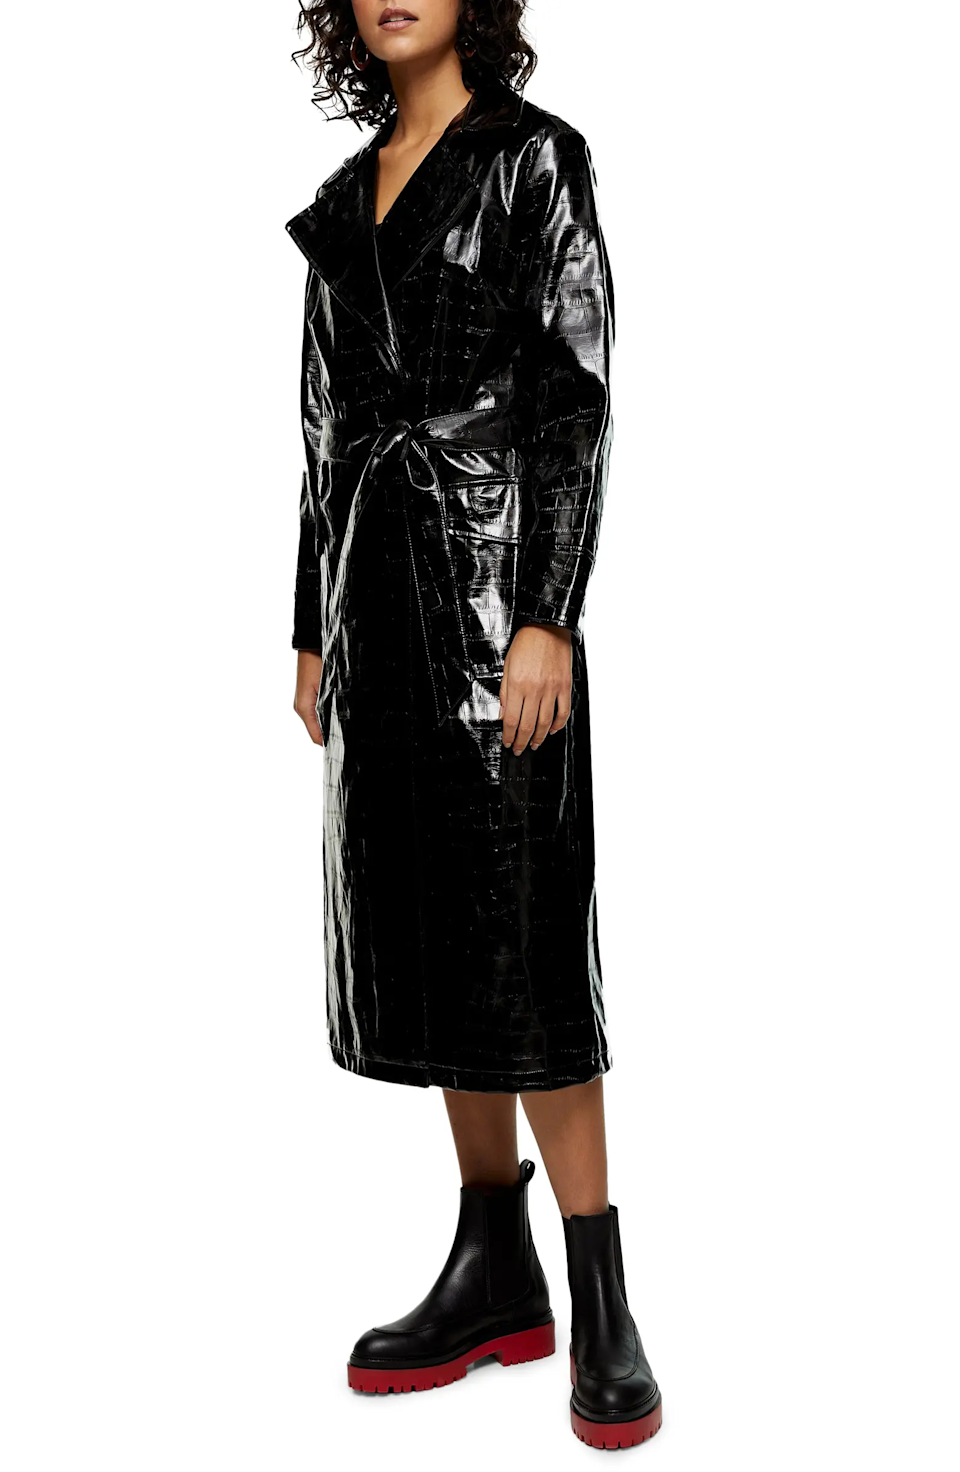 """<br><br><strong>Topshop</strong> Marina Crocodile Embossed Trench Coat, $, available at <a href=""""https://go.skimresources.com/?id=30283X879131&url=https%3A%2F%2Fwww.nordstrom.com%2Fs%2Ftopshop-marina-crocodile-embossed-trench-coat%2F5772874"""" rel=""""nofollow noopener"""" target=""""_blank"""" data-ylk=""""slk:Nordstrom"""" class=""""link rapid-noclick-resp"""">Nordstrom</a>"""